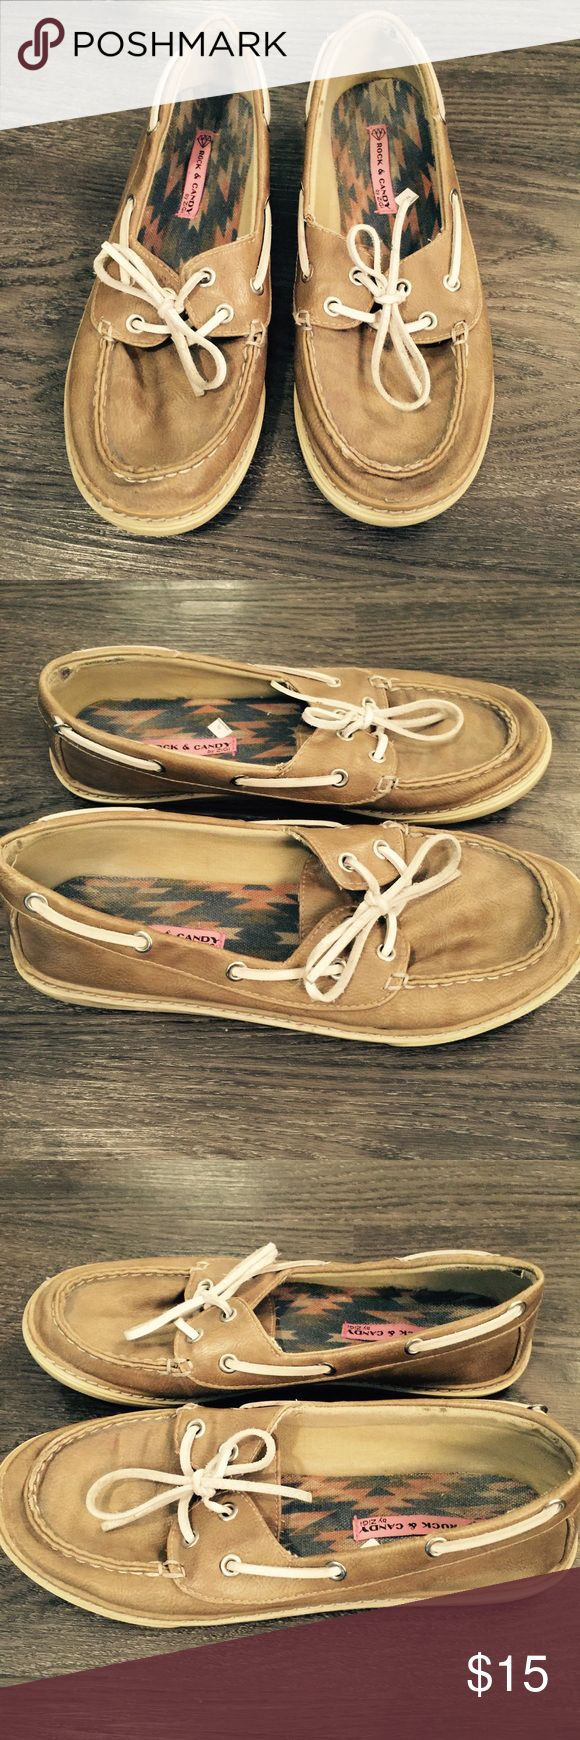 Womens boat shoes. Rock Candy Brand women's boat shoes. Brown. Used. Well worn. Rock Candy Shoes Flats & Loafers